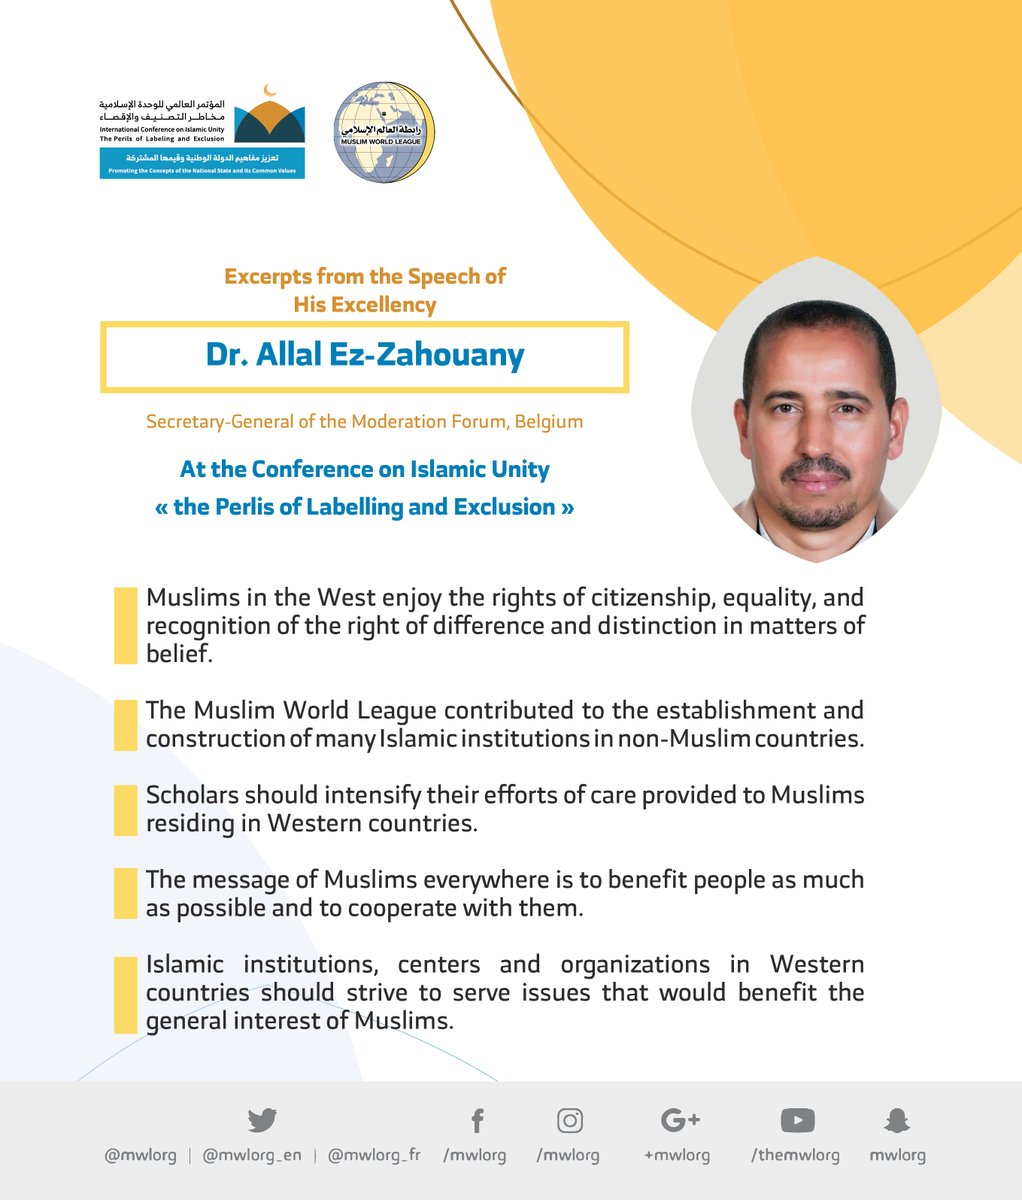 Dr. Allal Ez-Zahouany addresses 1200 Islamic Figures from 127 Countries representing 28 Islamic Components at the MWL conference on Islamic Unity